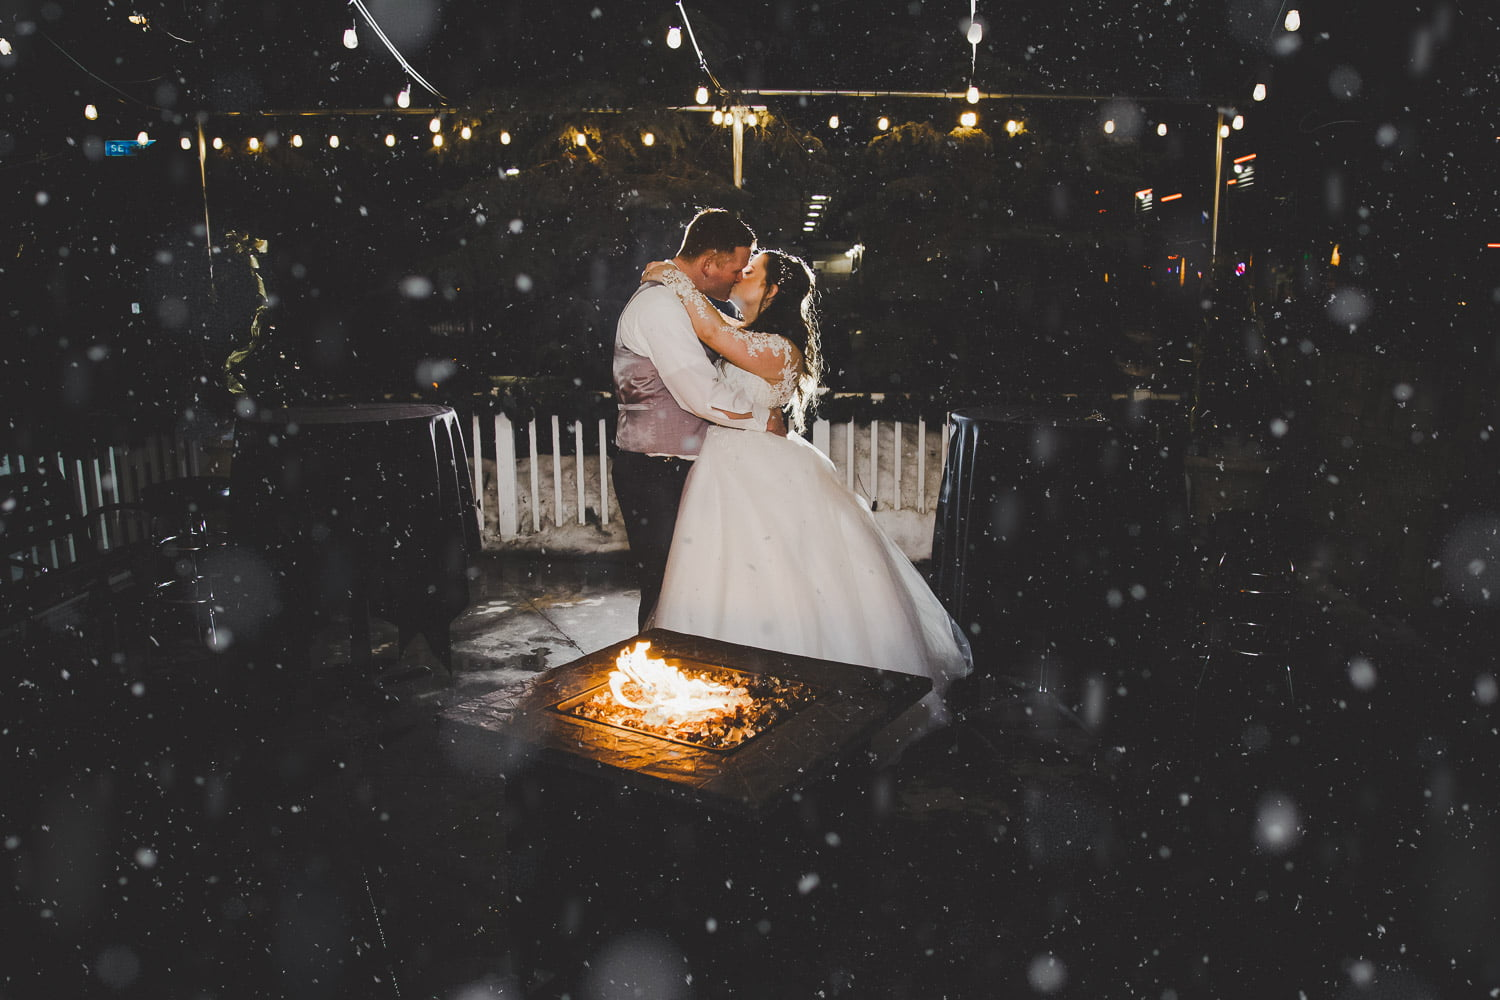 wedding photography at night in front of a bonfire fire in Minneapolis